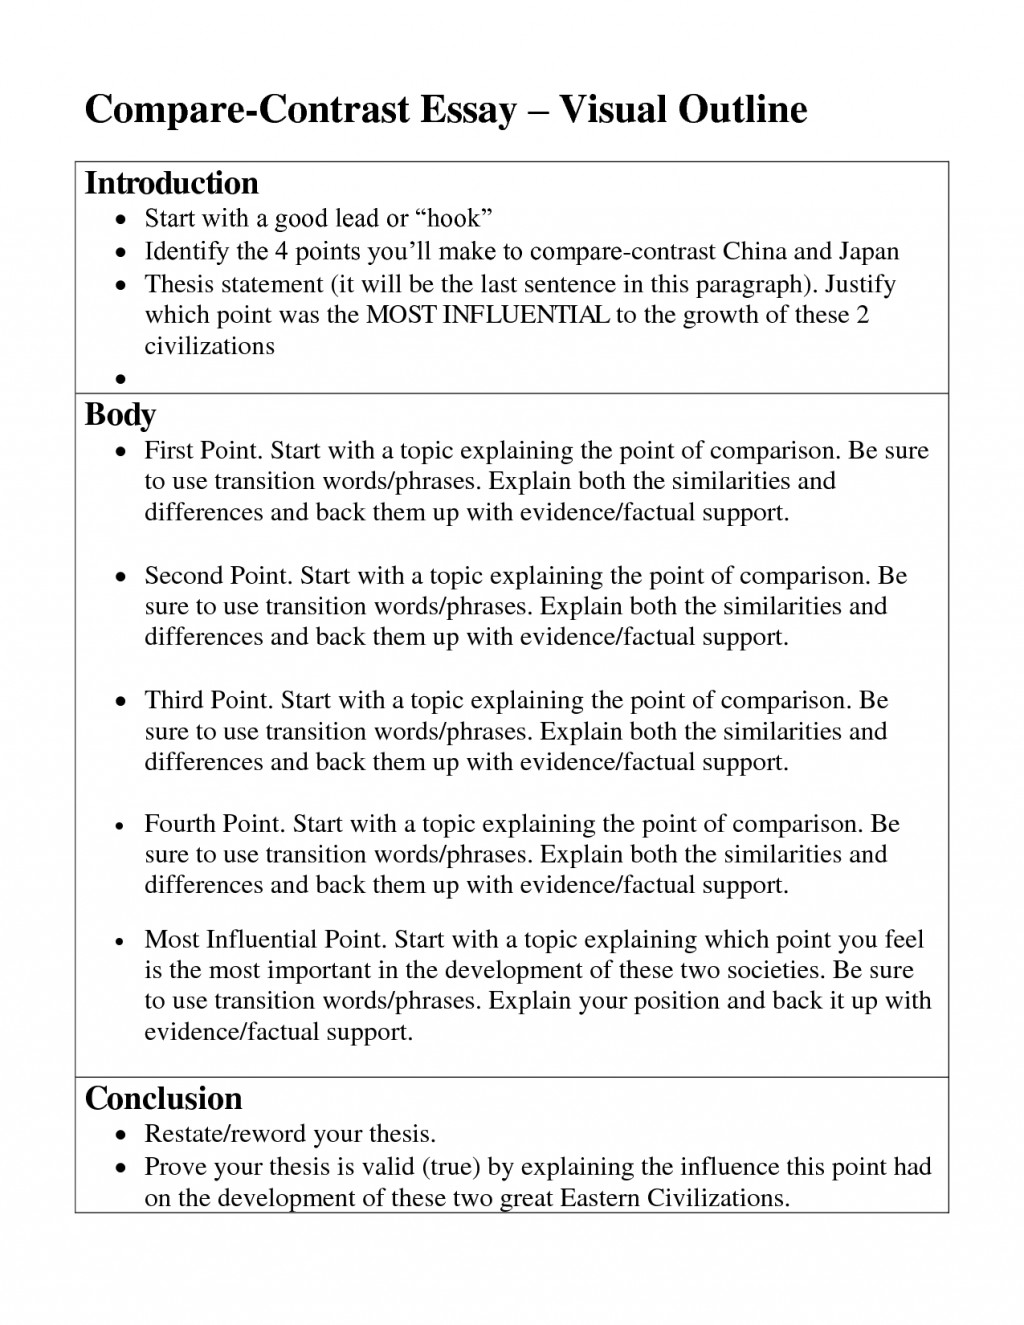 007 Essay Example Comparing And Contrasting Unique Comparison Contrast Sample Pdf Compare Structure University Topics On Health Large